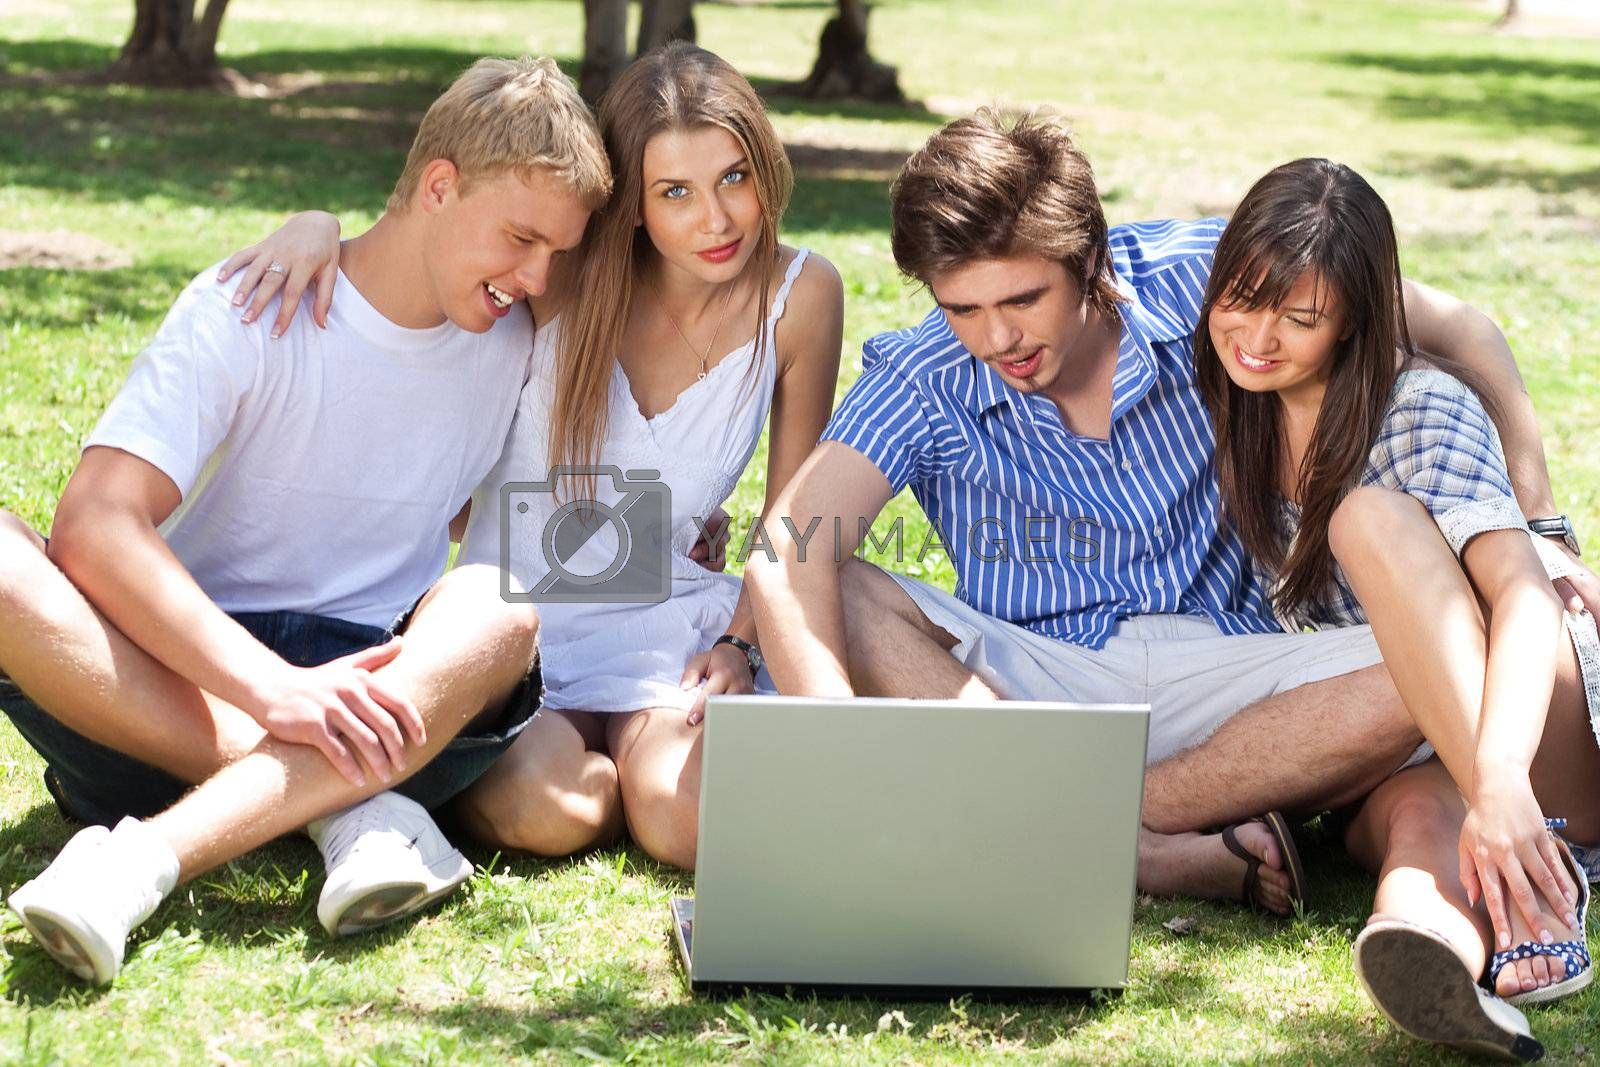 Young boys and girl students using laptop in the campus